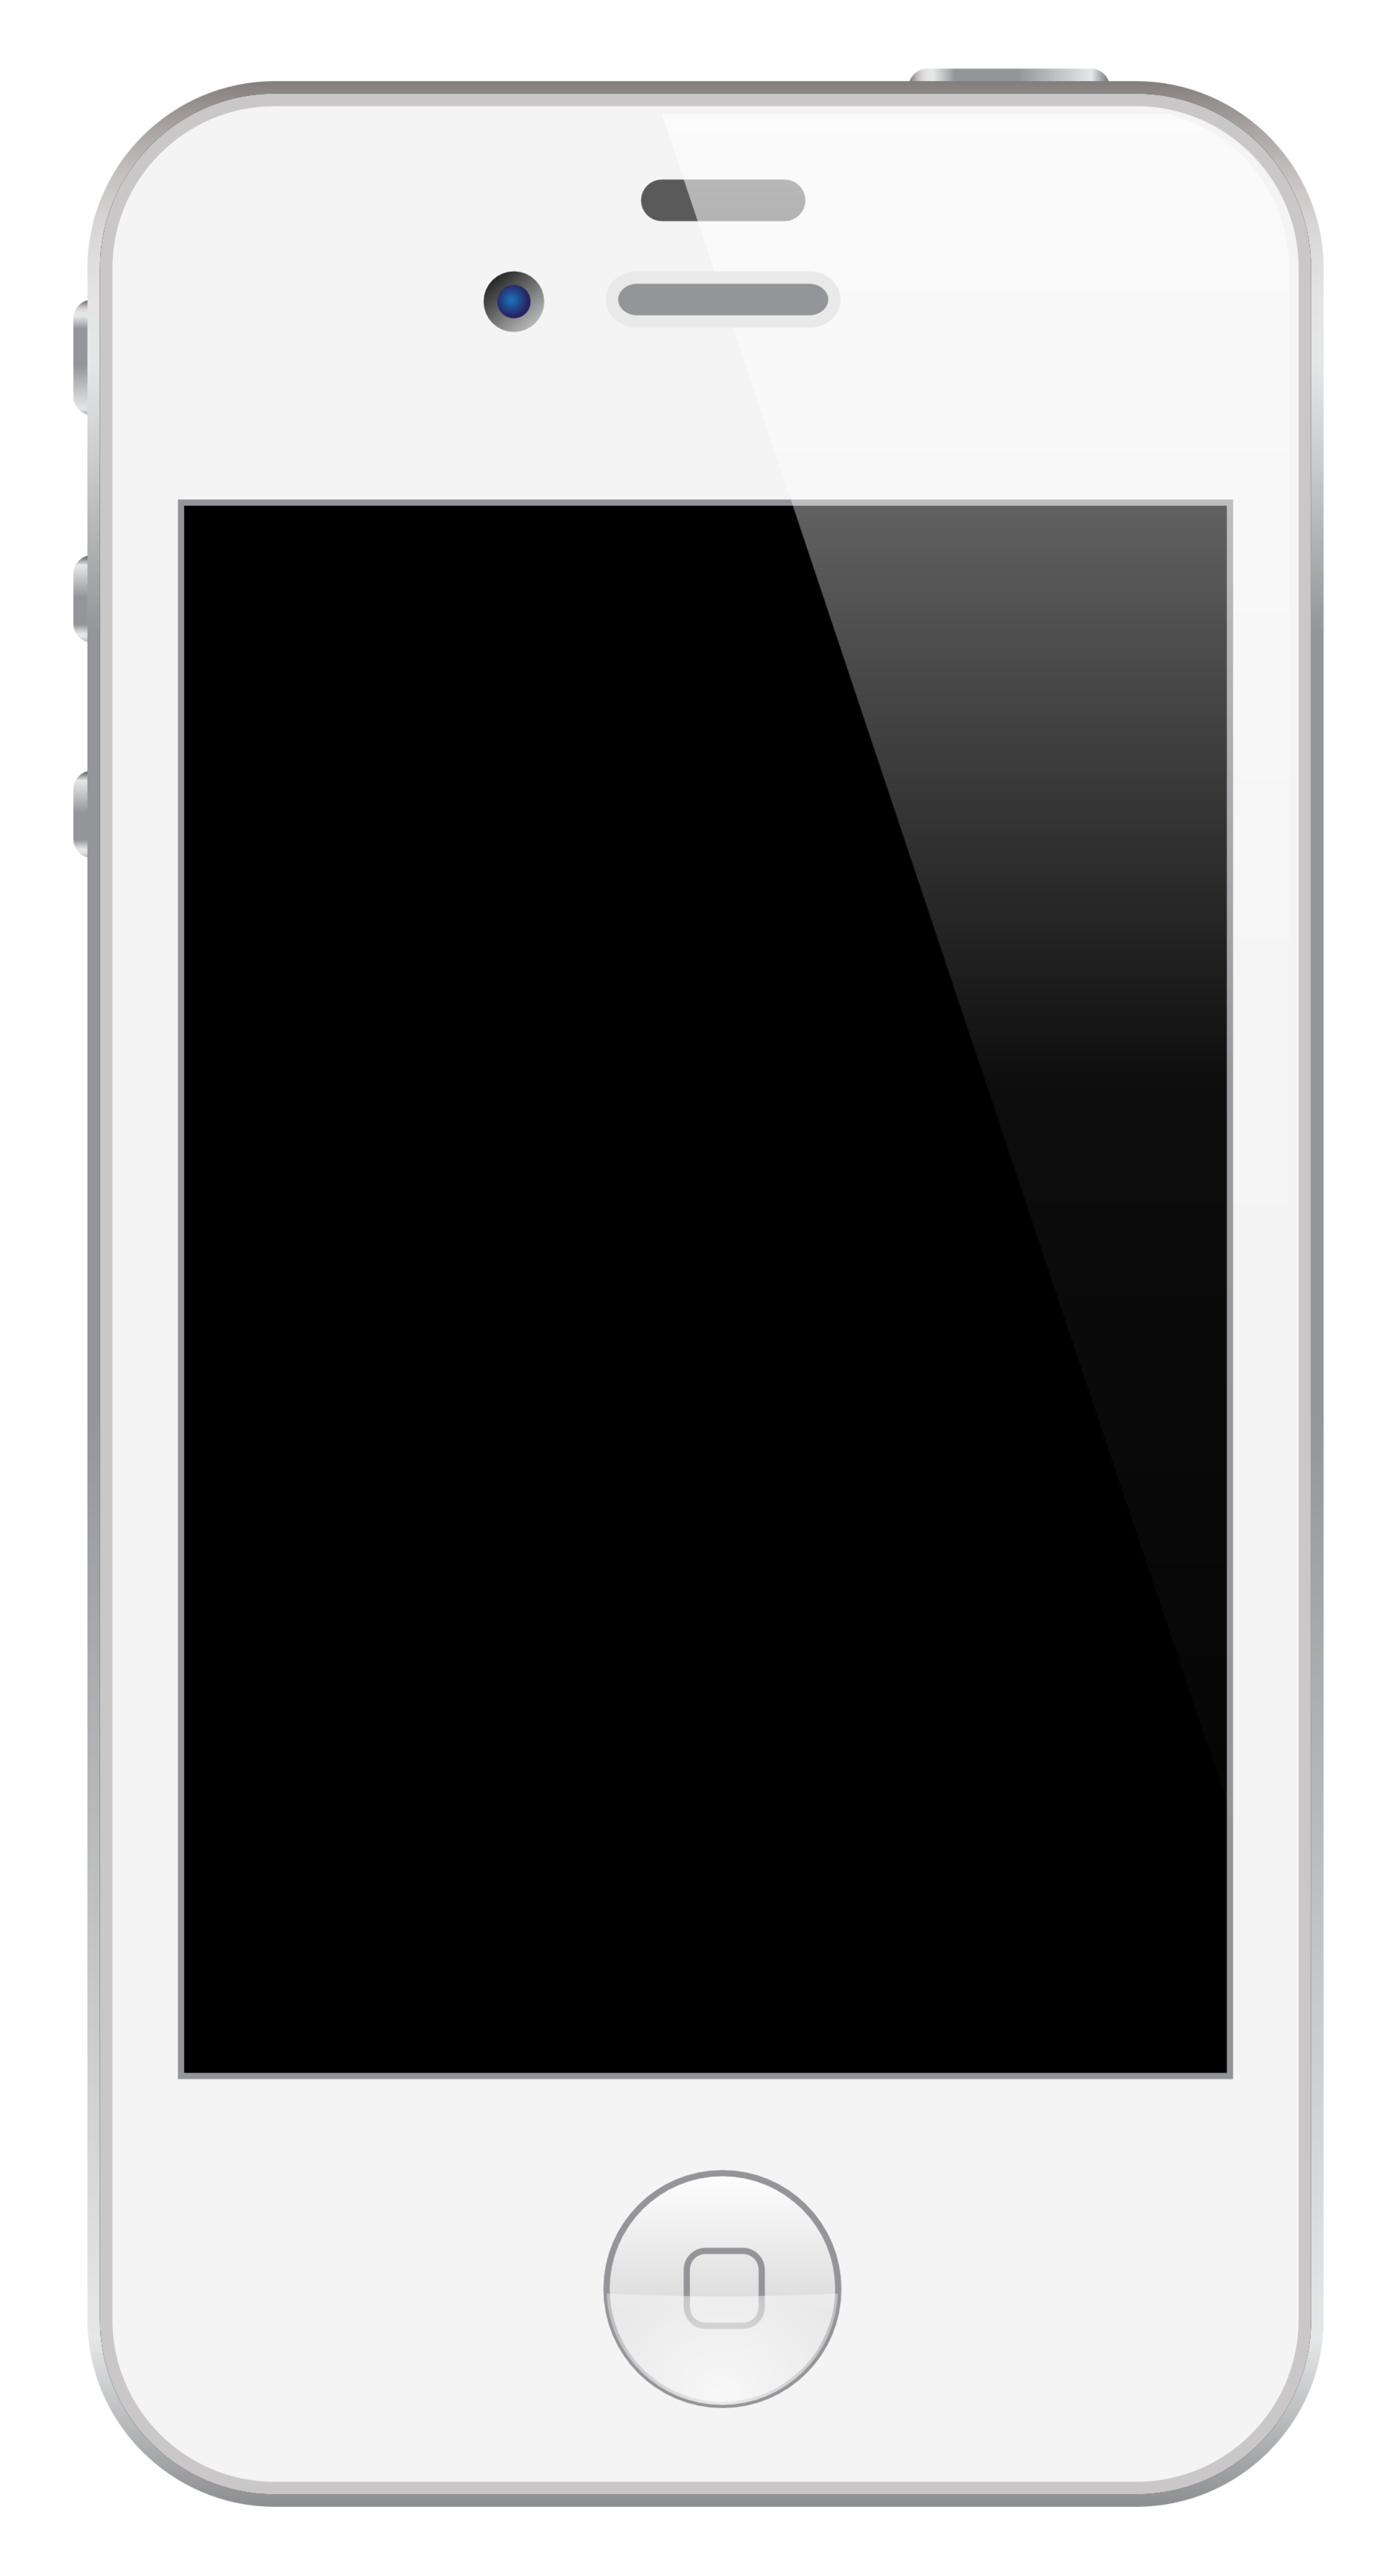 Iphone app clipart size banner black and white download Iphone 5s clipart size - ClipartFest banner black and white download